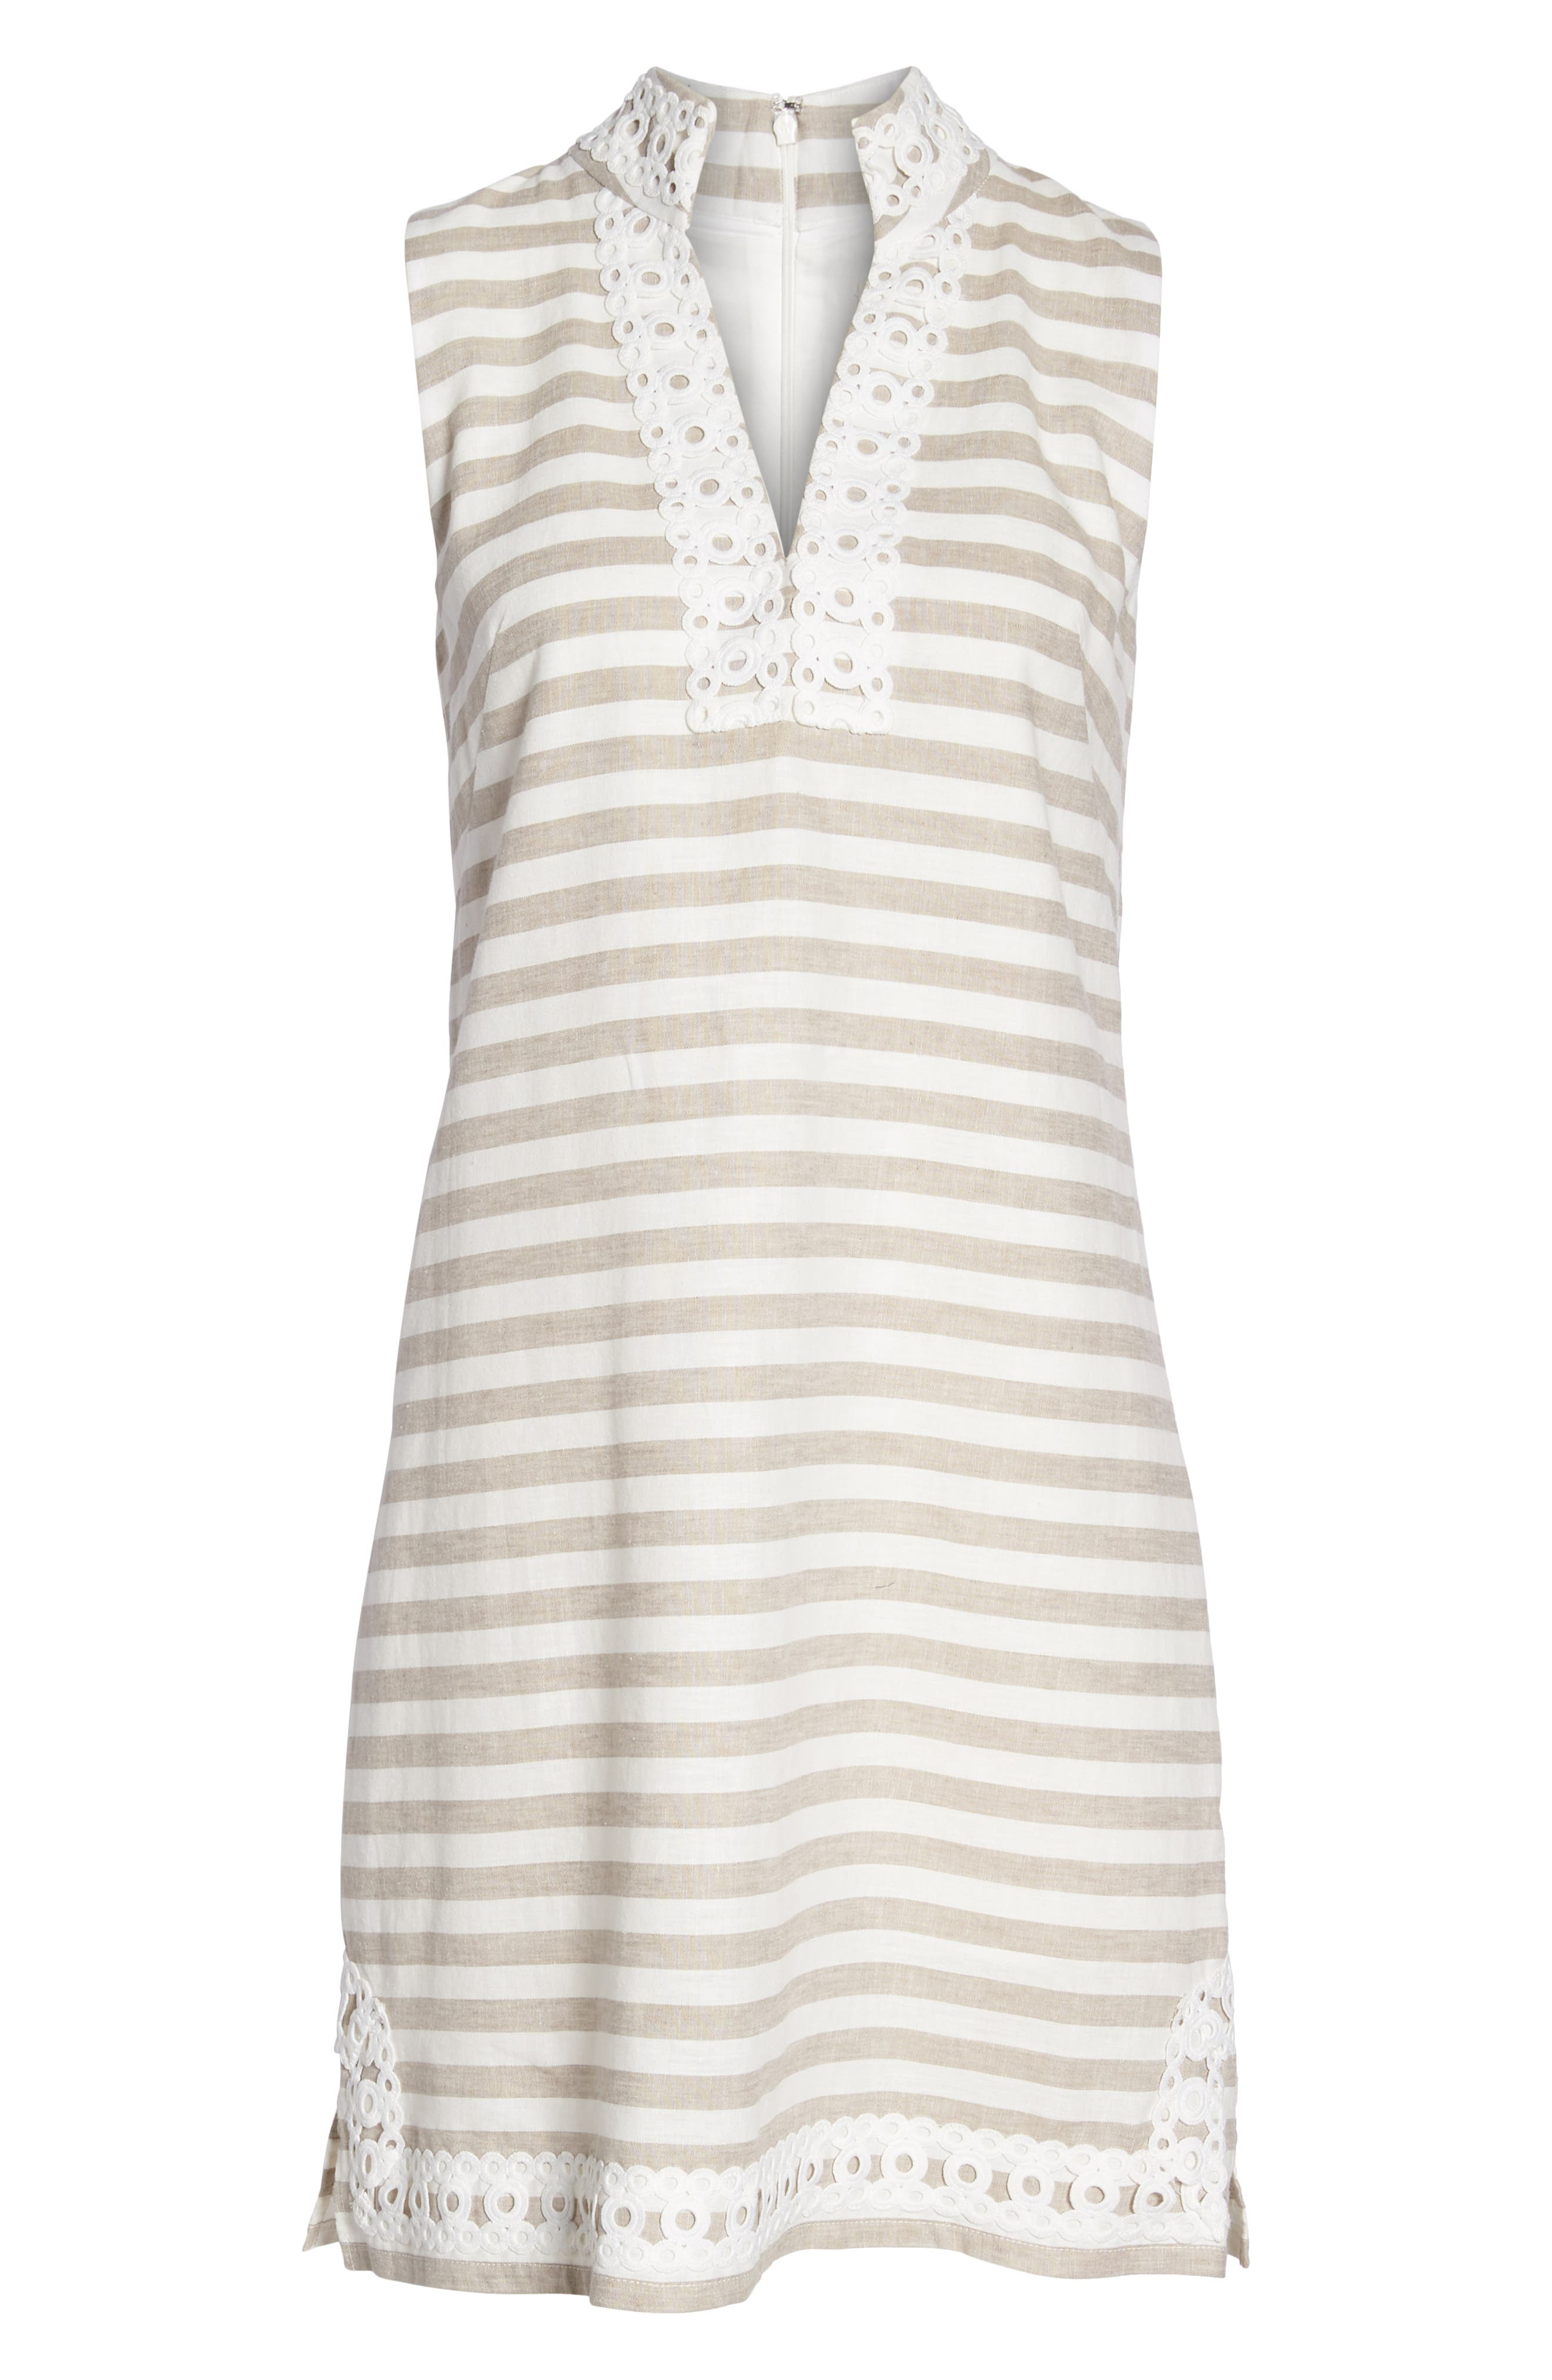 Stripe Linen & Cotton Blend Dress,                             Alternate thumbnail 7, color,                             Natural